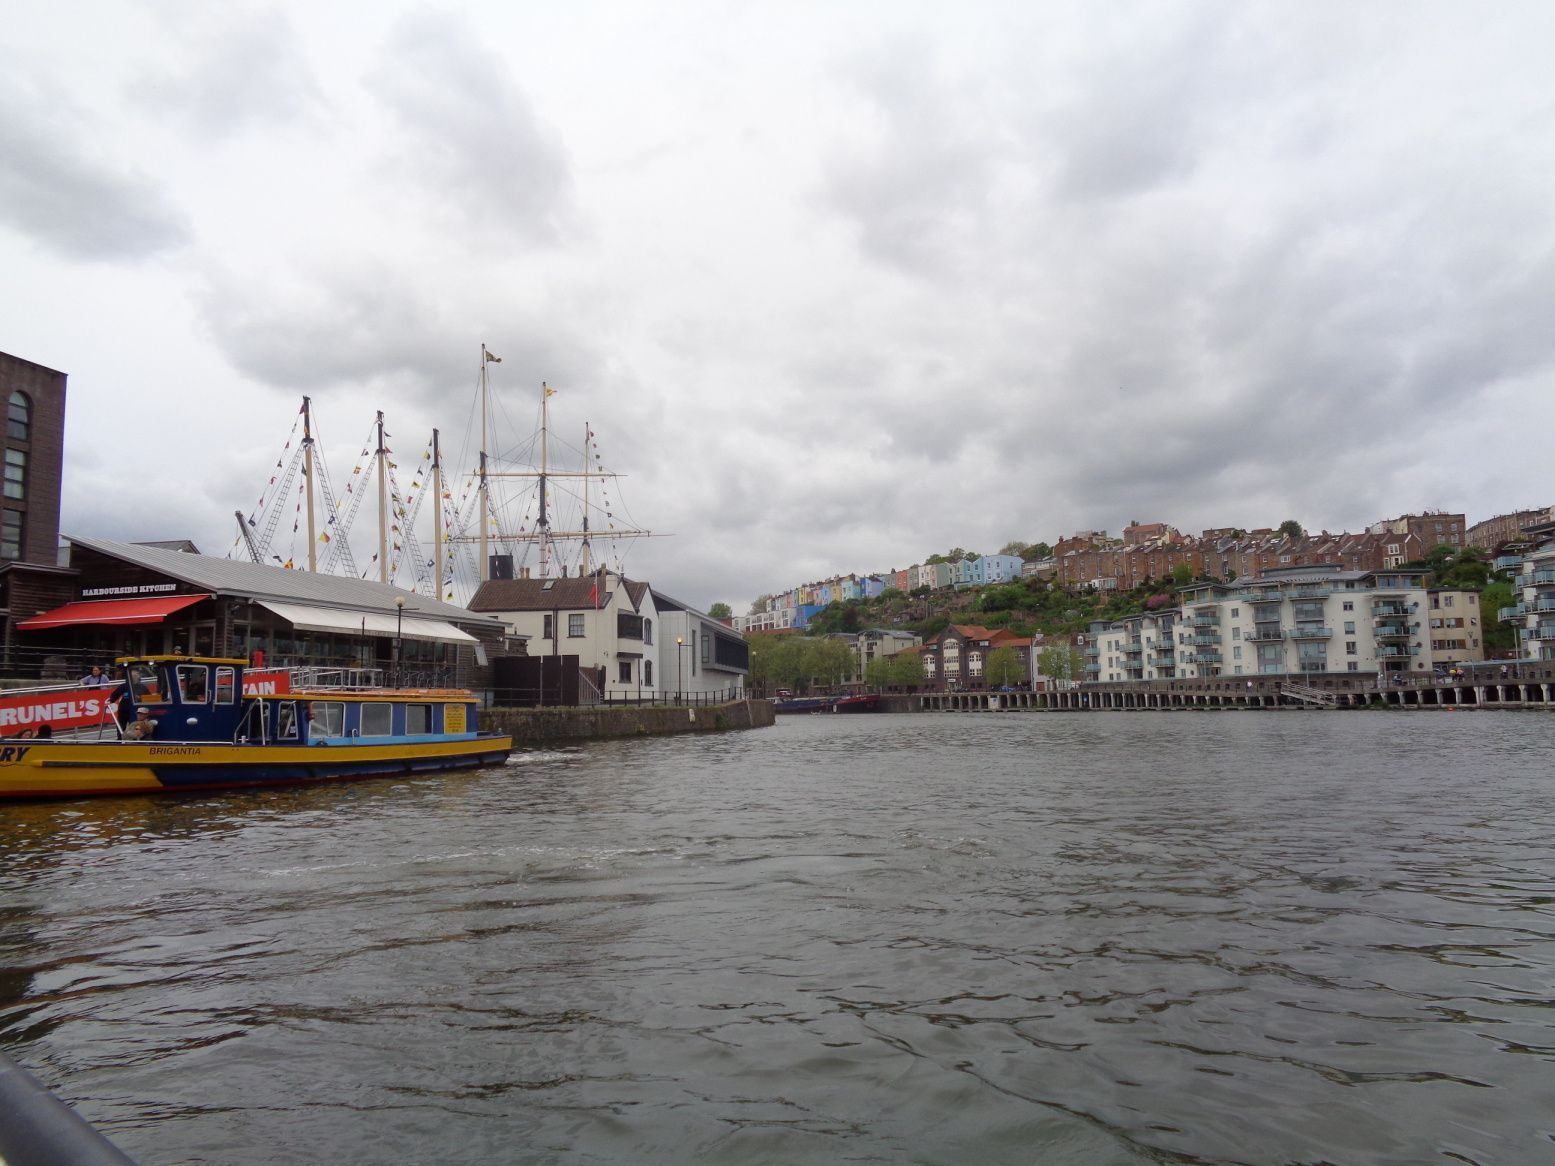 Bristol - Visite du S.S. Great Britain